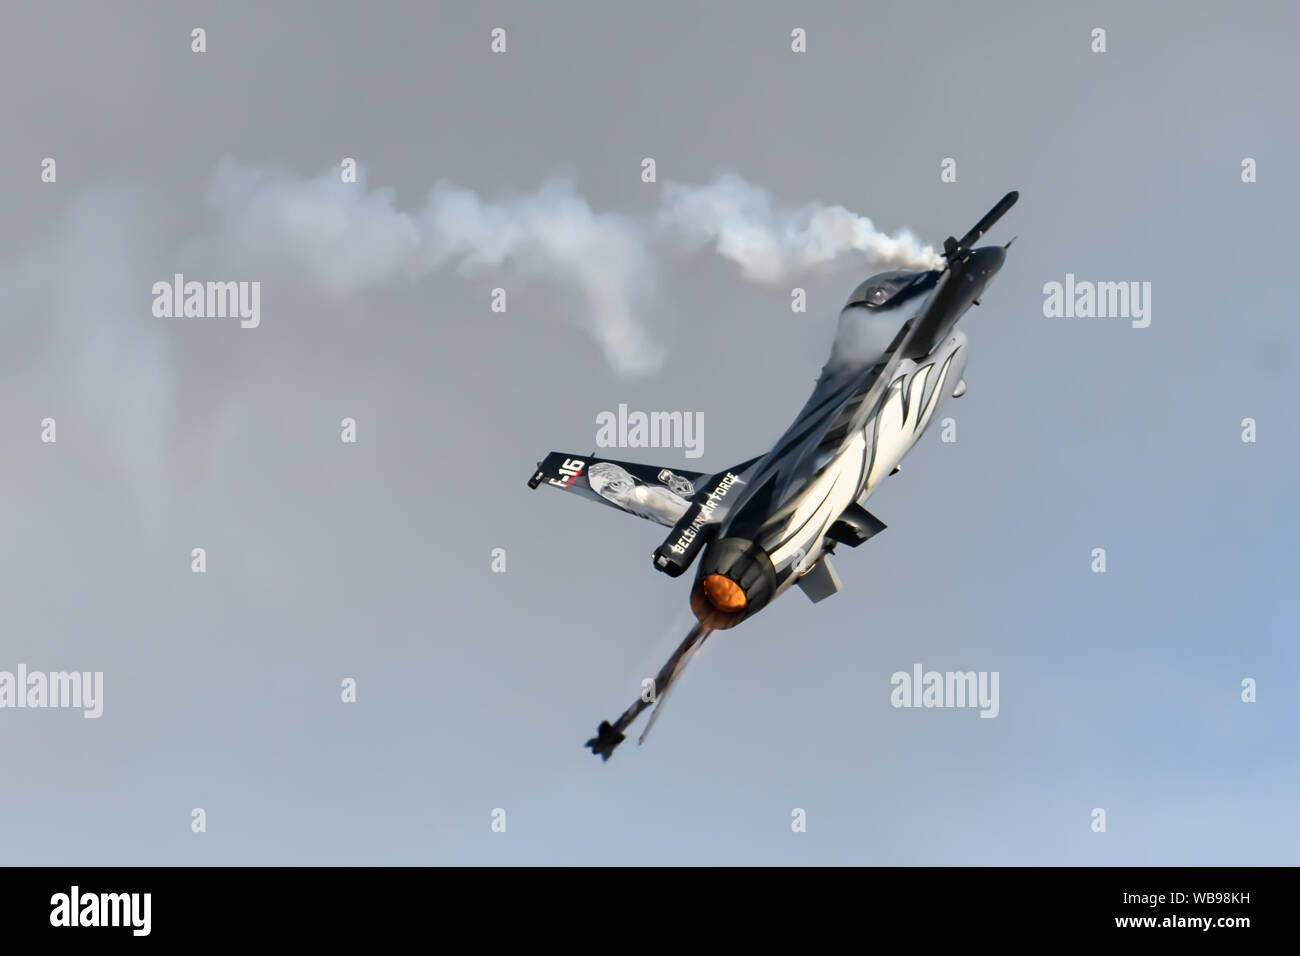 F-16 Fighting Falcon Jet Aircraft Banque D'Images